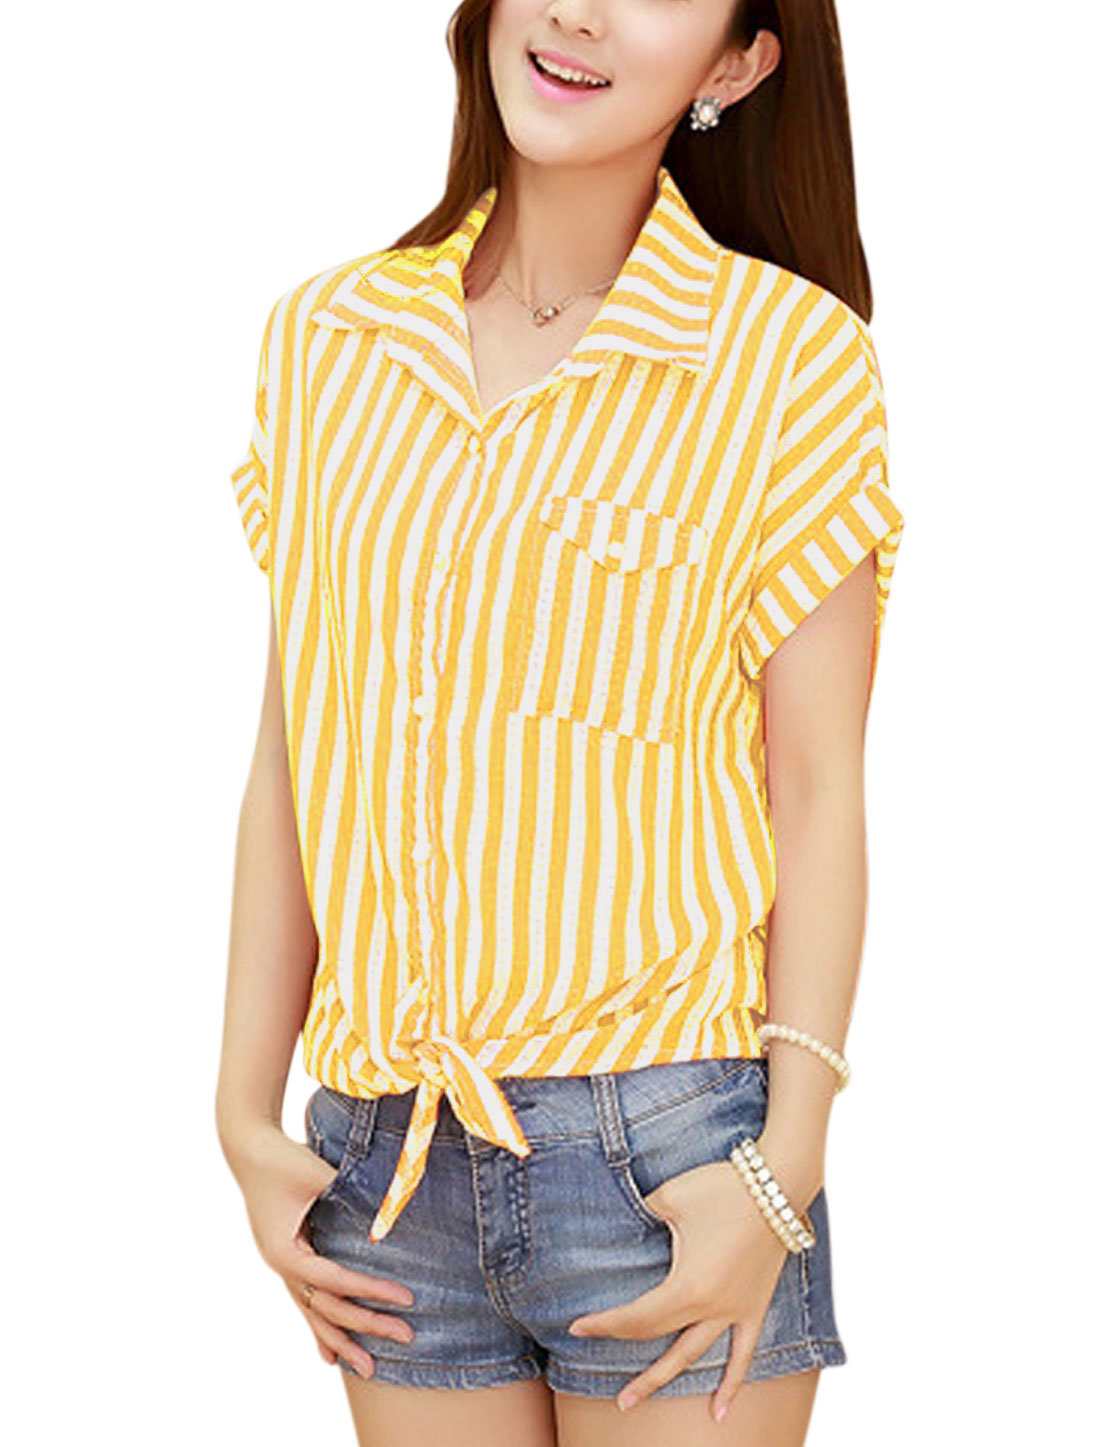 Women One Chest Pocket Single Breasted Blouse Yellow M